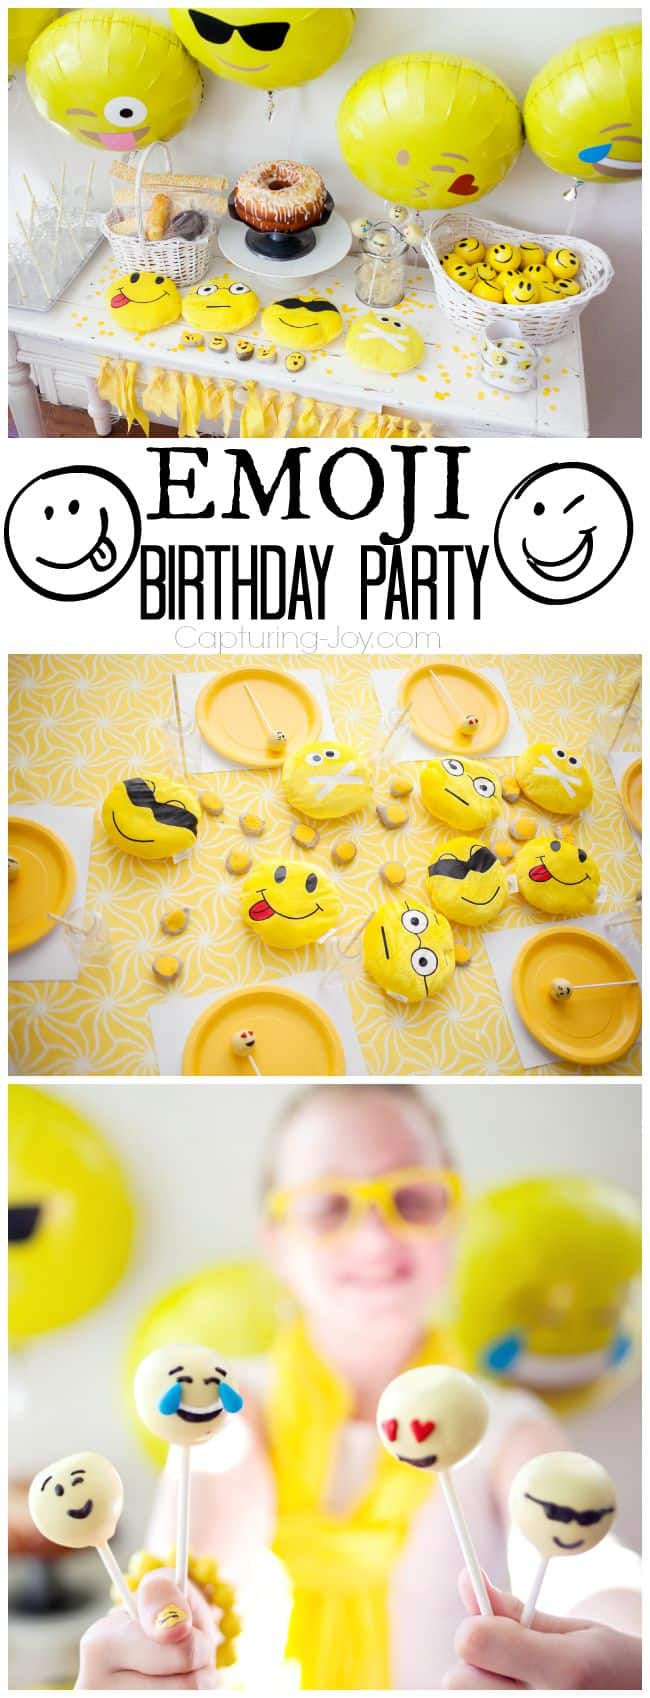 Emoji-Birthday-Party-with-Happy-Face-Emoticons